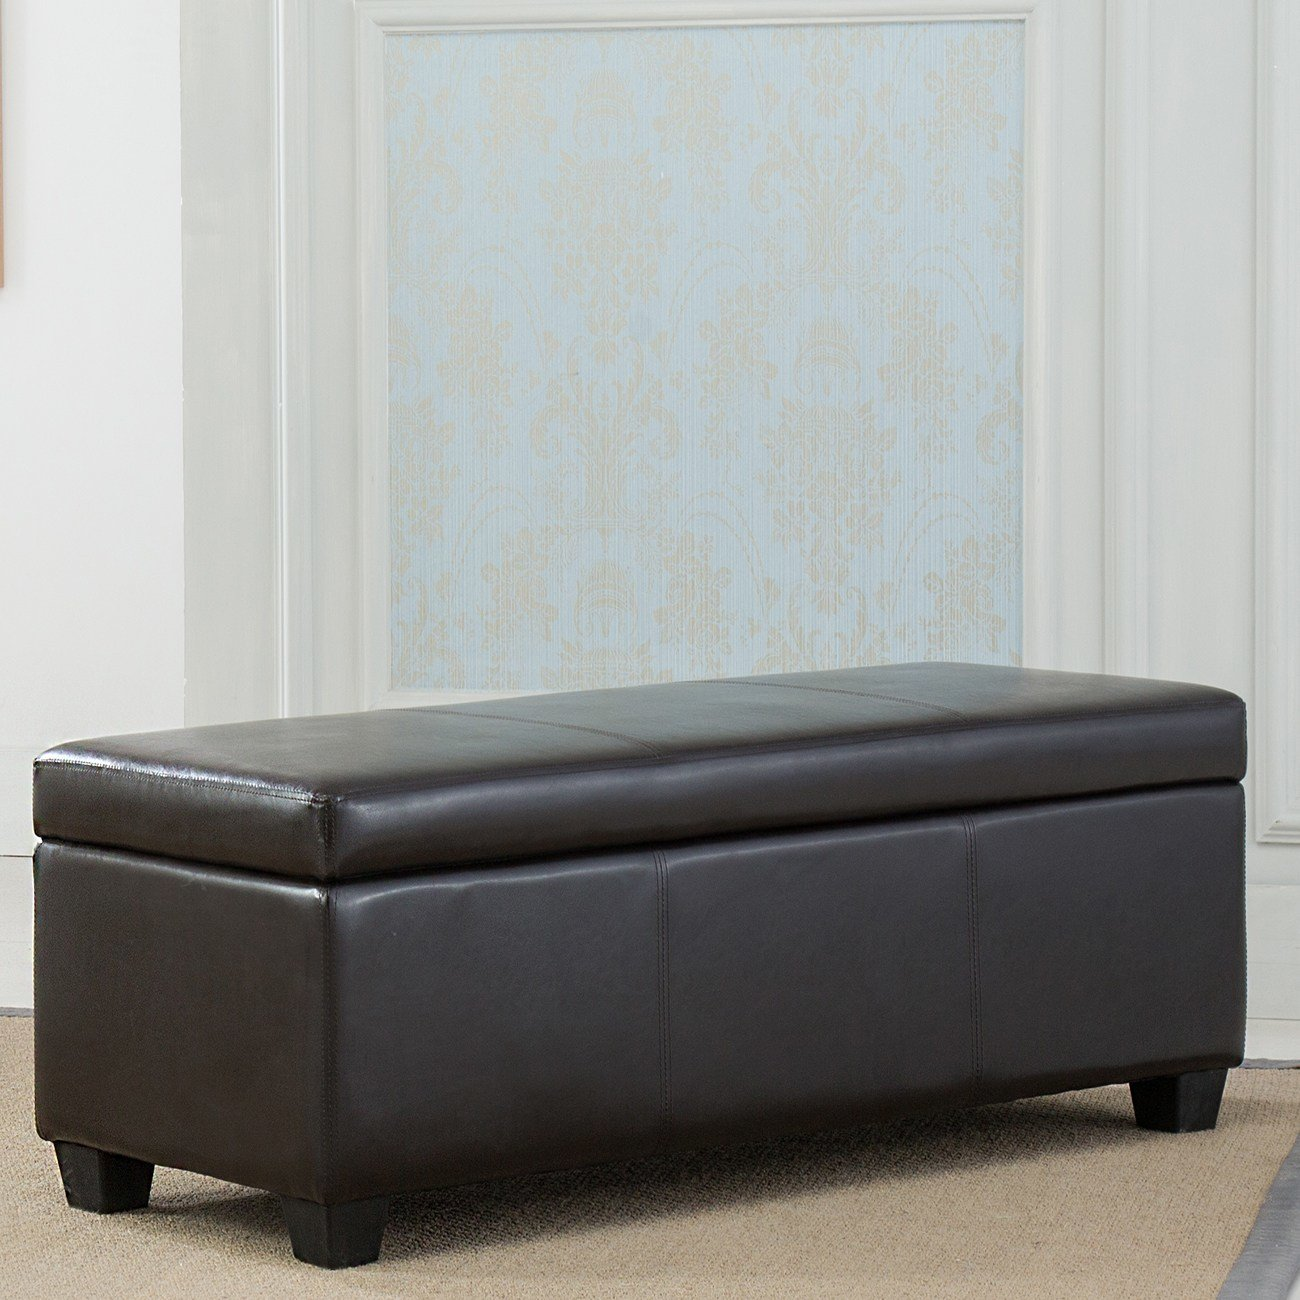 Best Contemporary Modern Faux Leather Bedroom Rectangular Storage Ottoman Bench 48 Ebay With Pictures